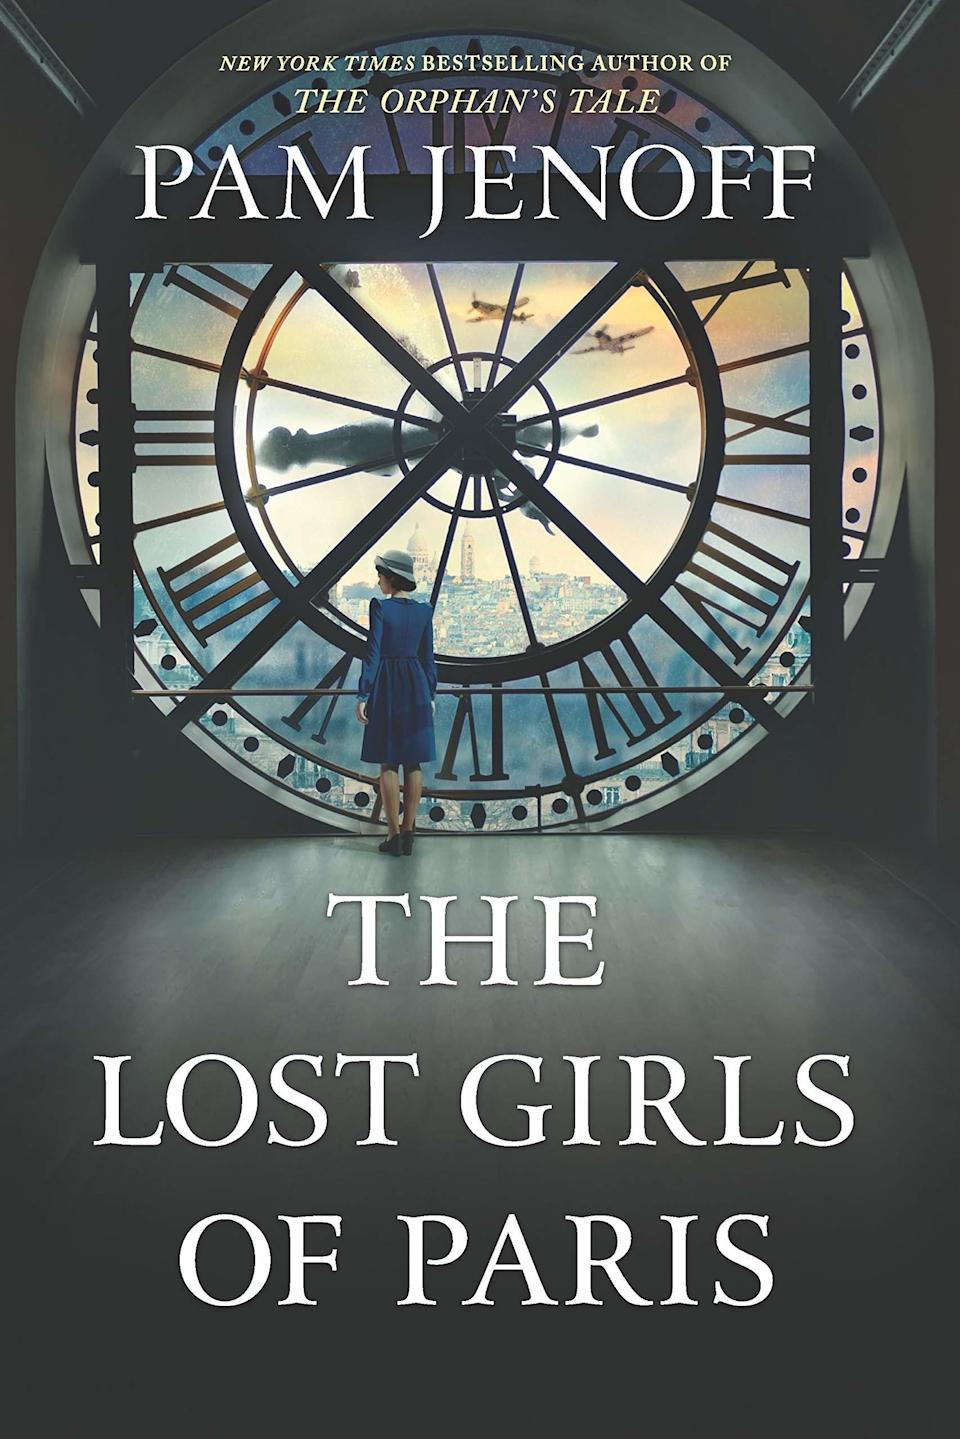 Jenoff, the author of <em>New York Times</em> best-seller <em>The Orphan's Tale,</em> is back with a novel about a group of female secret agents during World War II. Based on a series of real-life events, the book opens in Manhattan in 1946, when a woman discovers a suitcase that belonged to the leader of a network of spies based in London during the war. What follows is a portrait of sisterhood, courage, and drama. A must-read.